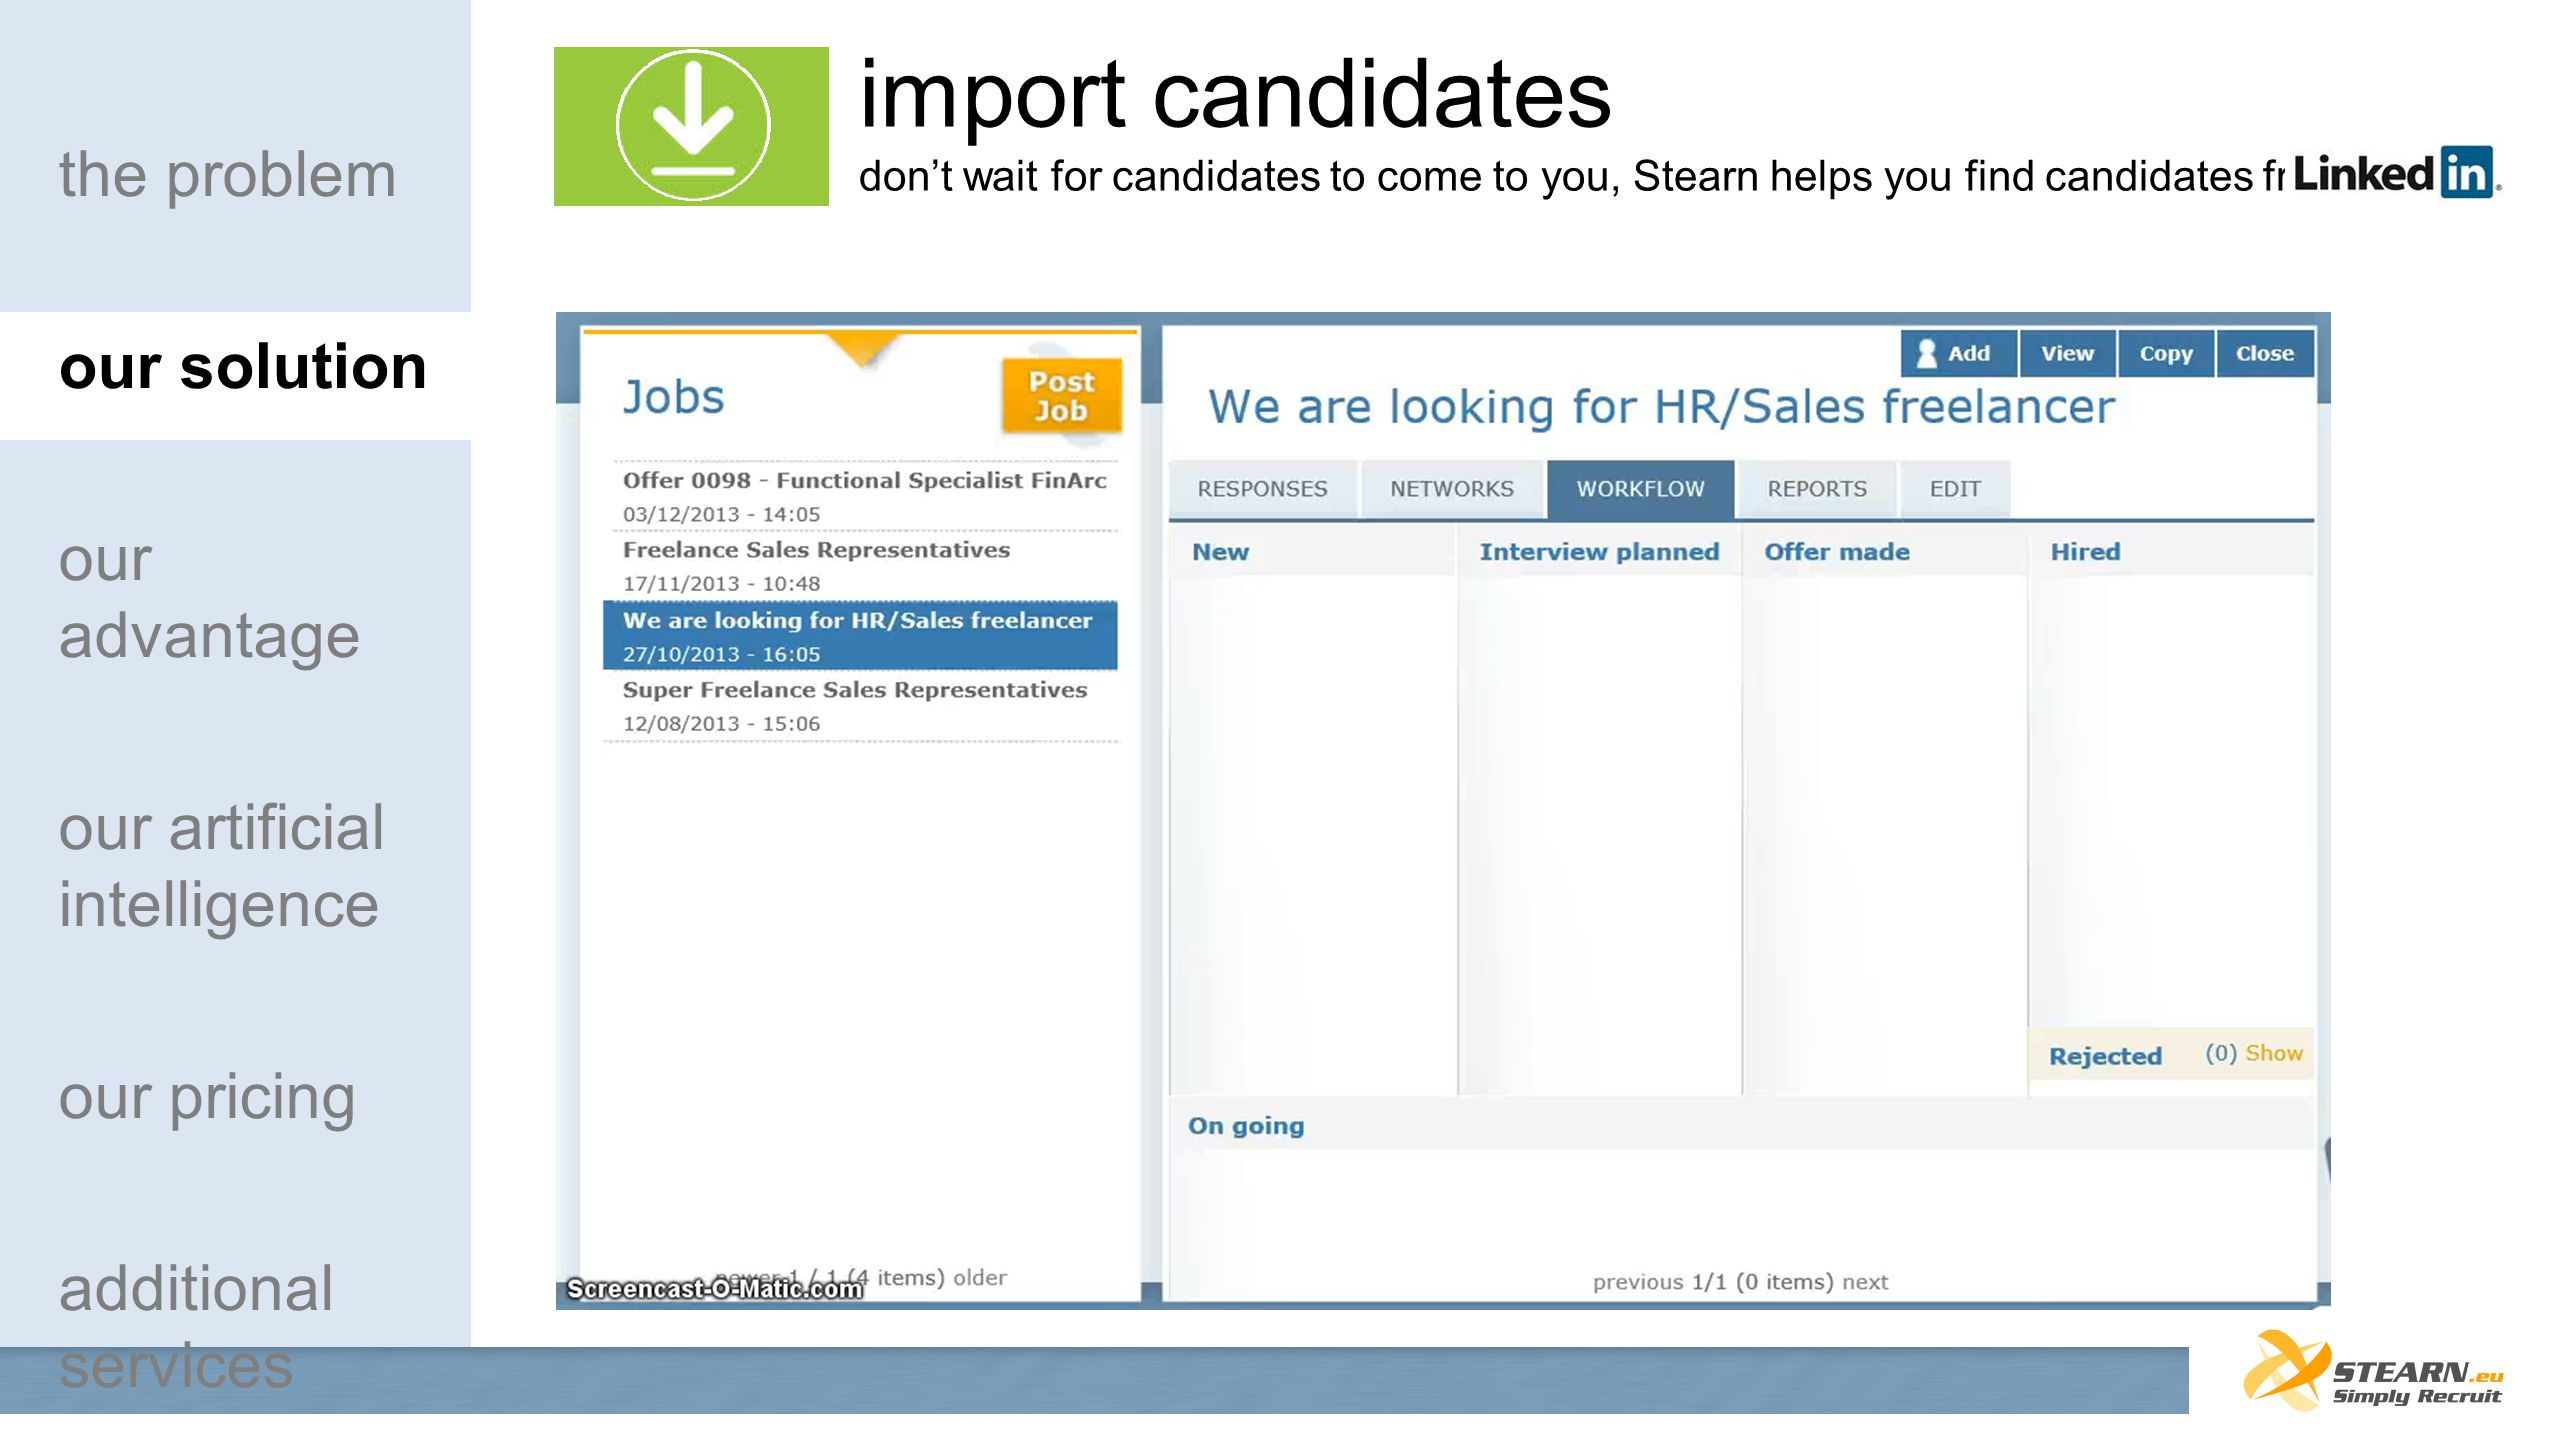 import candidates dont wait for candidates to come to you, Stearn helps you find candidates from the problem our solution our advantage our artificial intelligence our pricing additional services